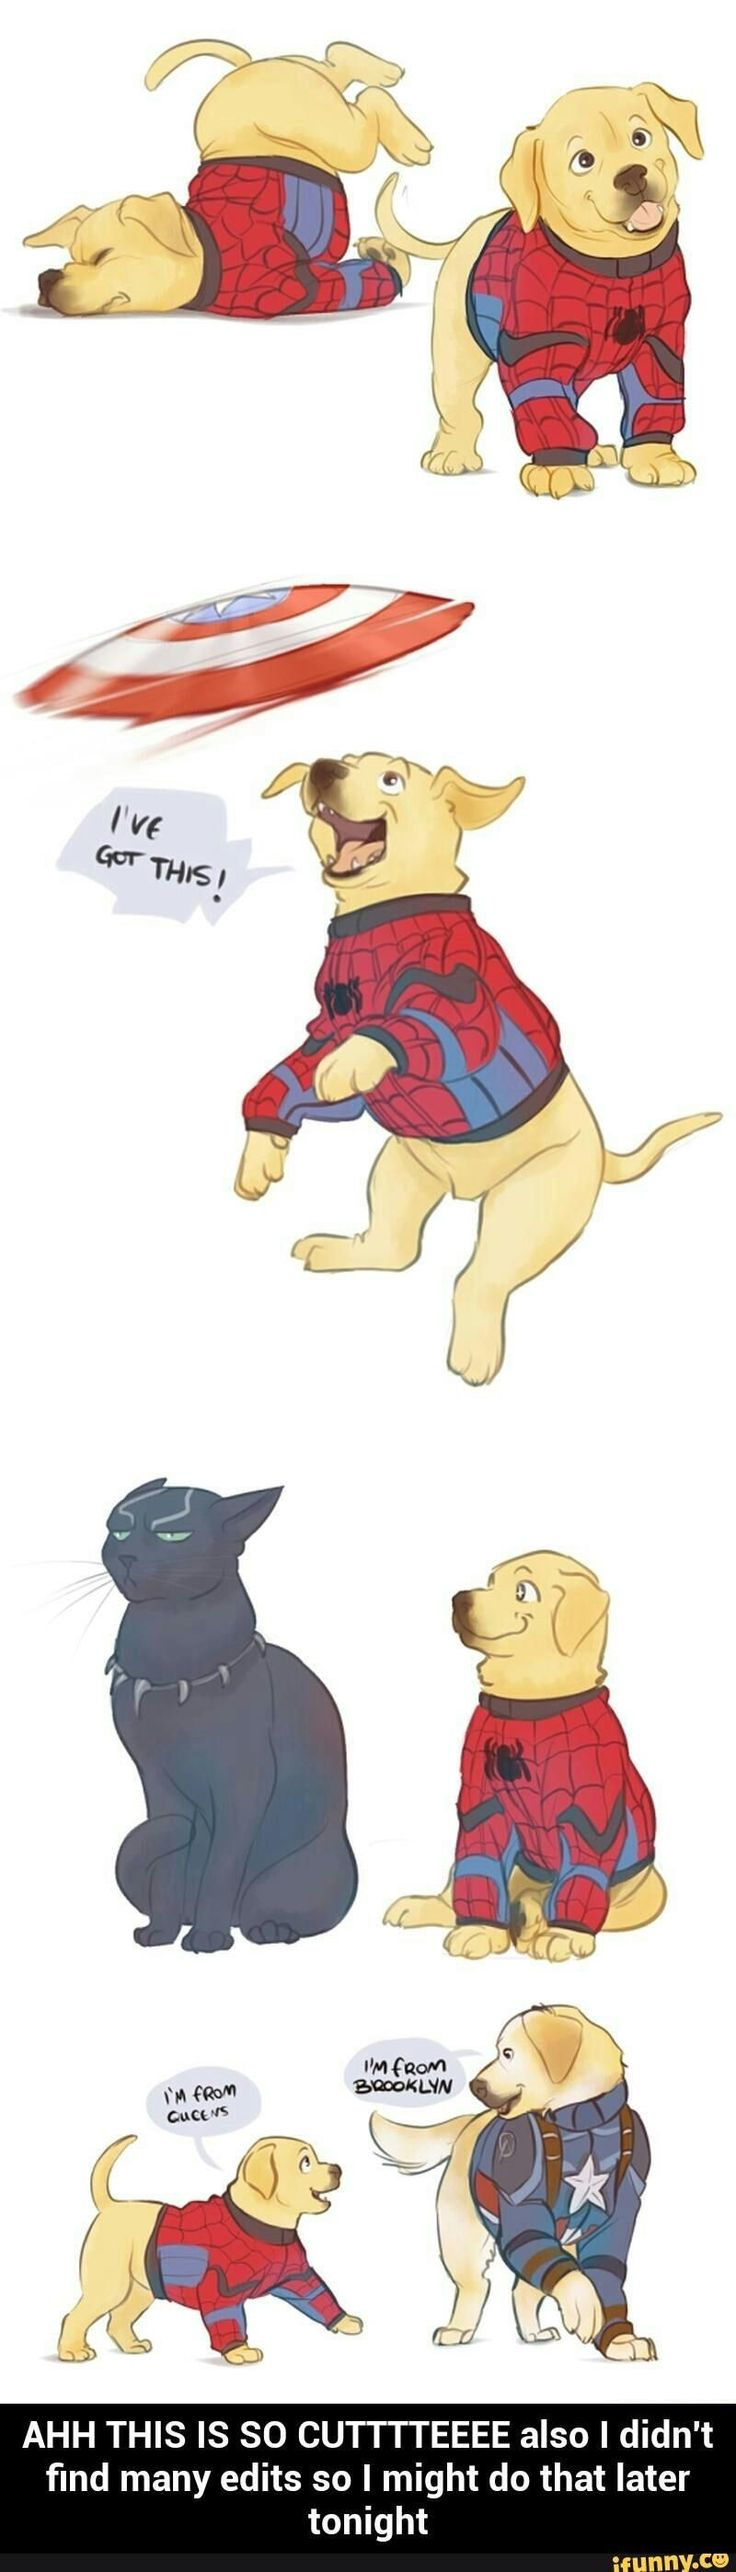 Ok this is legit cute. Tom Holland's spidey is growing on me. God I never thought I'd say THAT